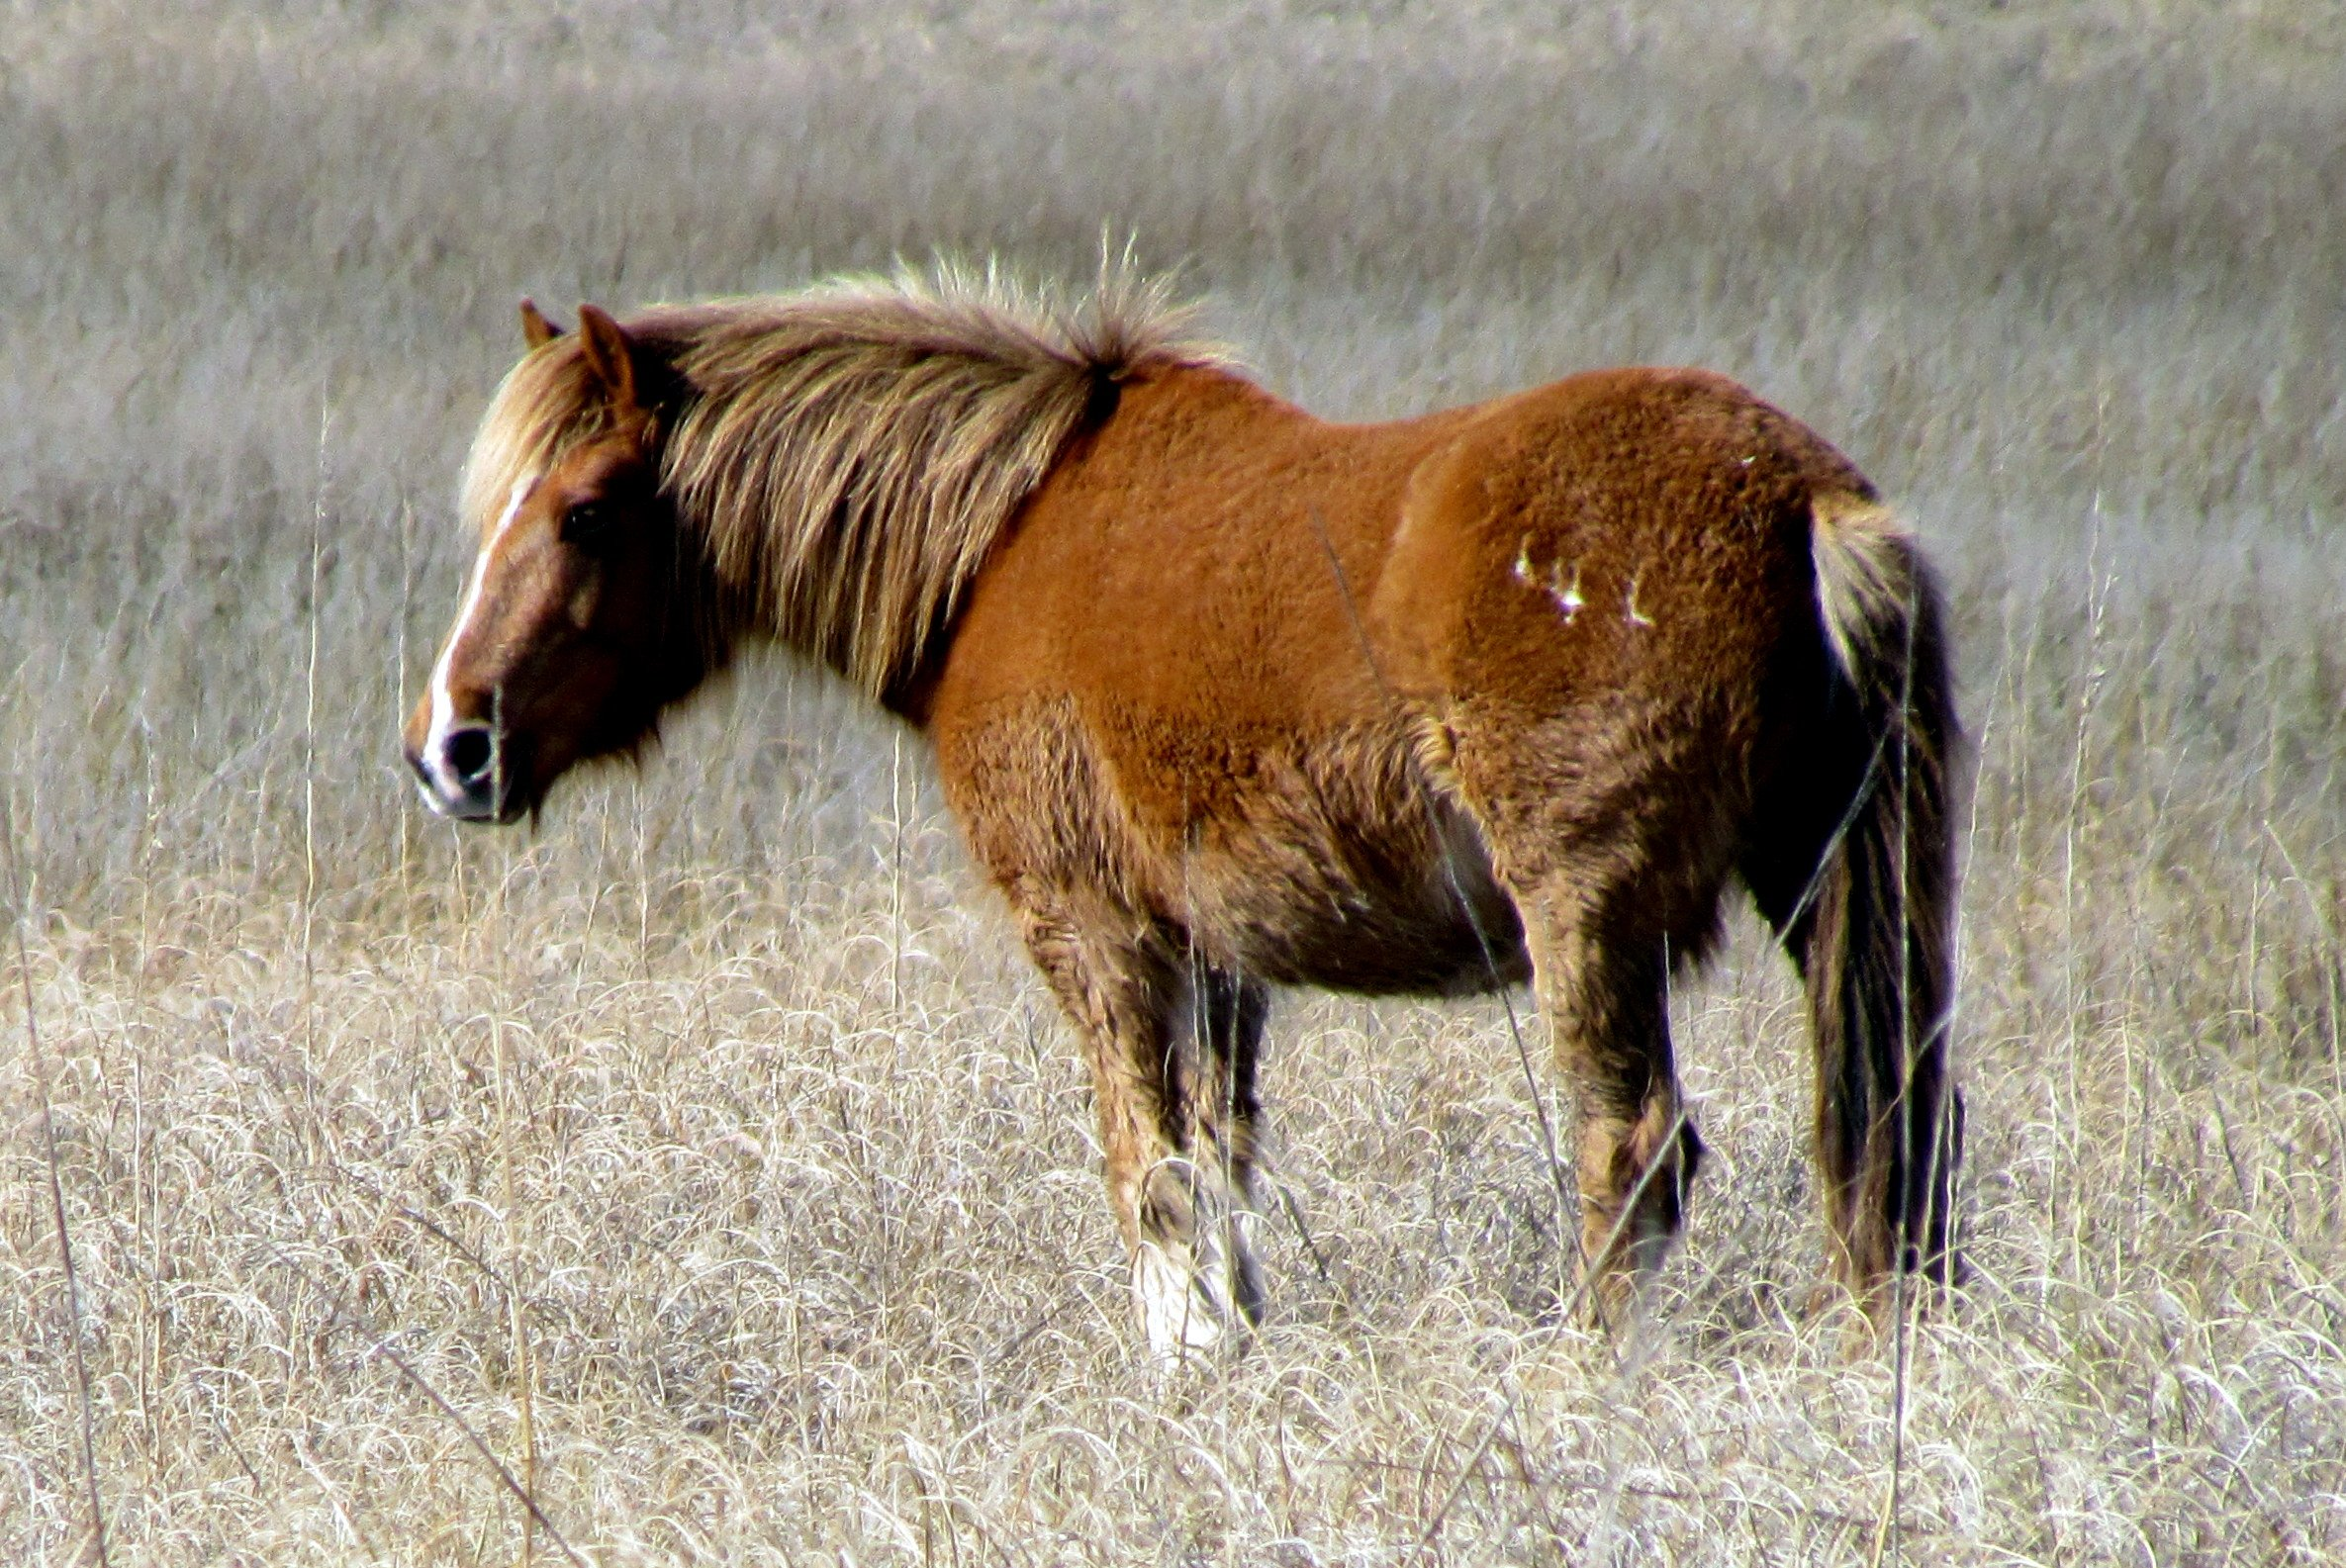 Shackleford Banks. Photo : Bobistraveling CC by 2.0 via Flickr